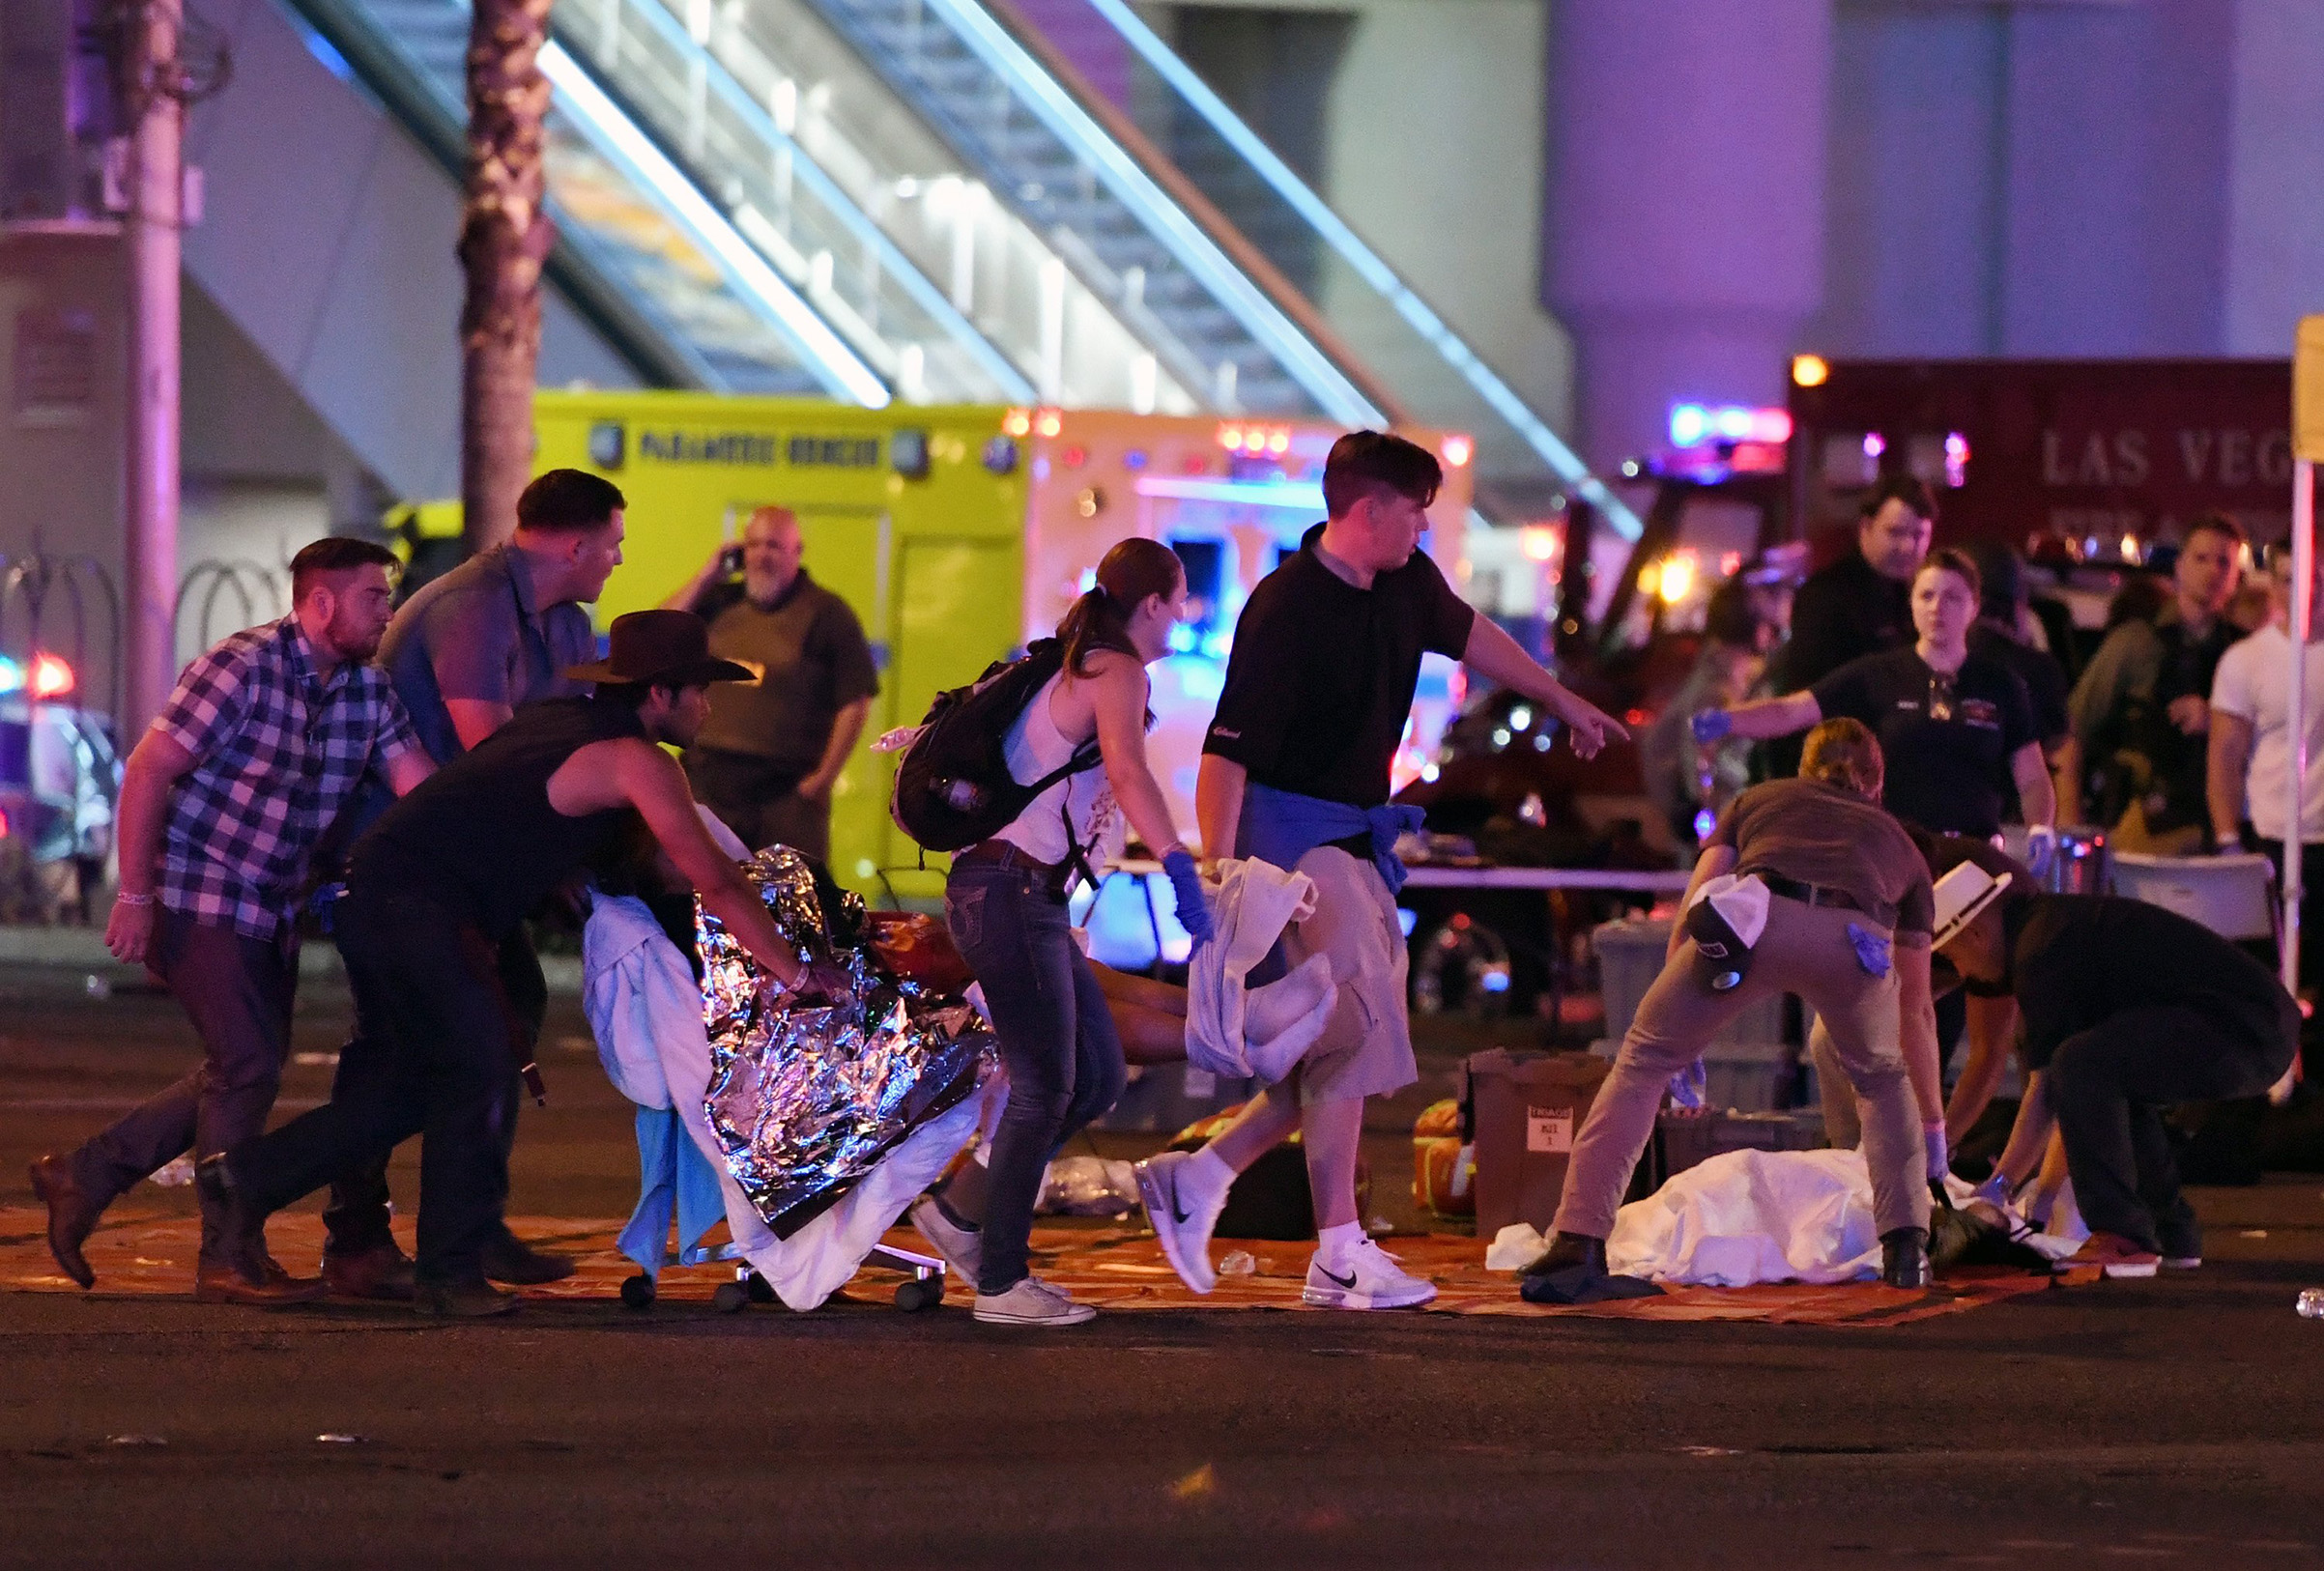 An injured person is tended to after a mass shooting at the Route 91 Harvest country music festival on Oct. 1, 2017 in Las Vegas.